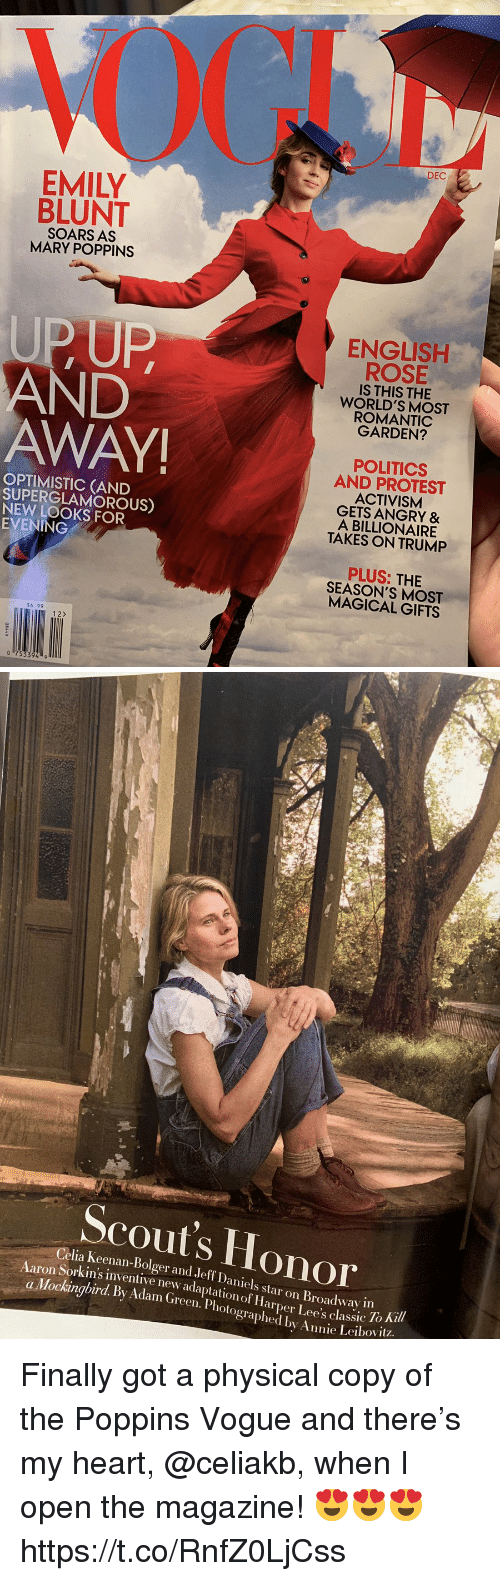 mockingbird: DEC  EMILY  BLUNT  SOARS AS  MARY POPPINS  UPUP  AND  AWAY  ENGLISH  ROSE  IS THIS THE  WORLD'S MOST  ROMANTIC  GARDEN?  OPTIMISTIC (AND  SUPERGLAMOROUS)  NEW LOOKS FOR  EVENING  POLITICS  AND PROTEST  ACTIVISM  GETS ANGRY &  A BILLIONAIRE  TAKES ON TRUMP  PLUS: THIE  SEASON'S MOST  MAGICAL GIFTS  $6.99  12>   Scout's Honor  Celia Keenan-Bolger and Jeff Daniels star on Broadway in  Sorkin's inventive new adaptation of Harper Lee's classic 10  To Ki  a Mockingbird. By Adam (Green. Photographed by Annie Leibovit? Finally got a physical copy of the Poppins Vogue and there's my heart, @celiakb, when I open the magazine! 😍😍😍 https://t.co/RnfZ0LjCss